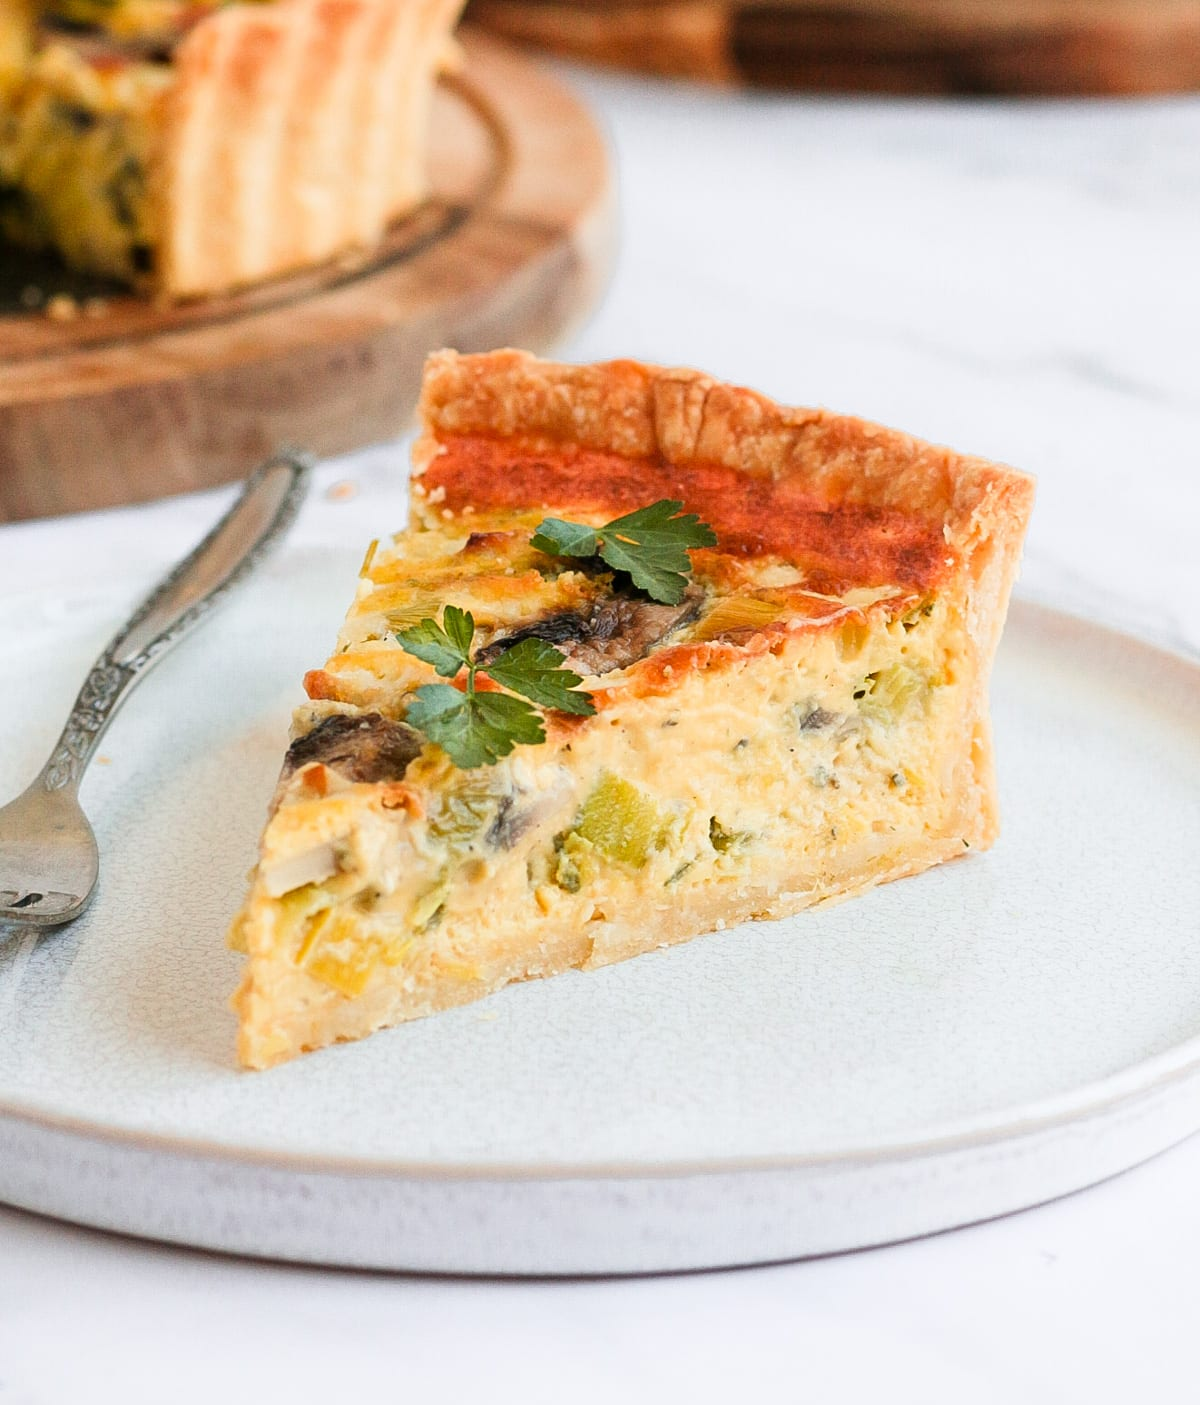 One slice of quiche on a white plate